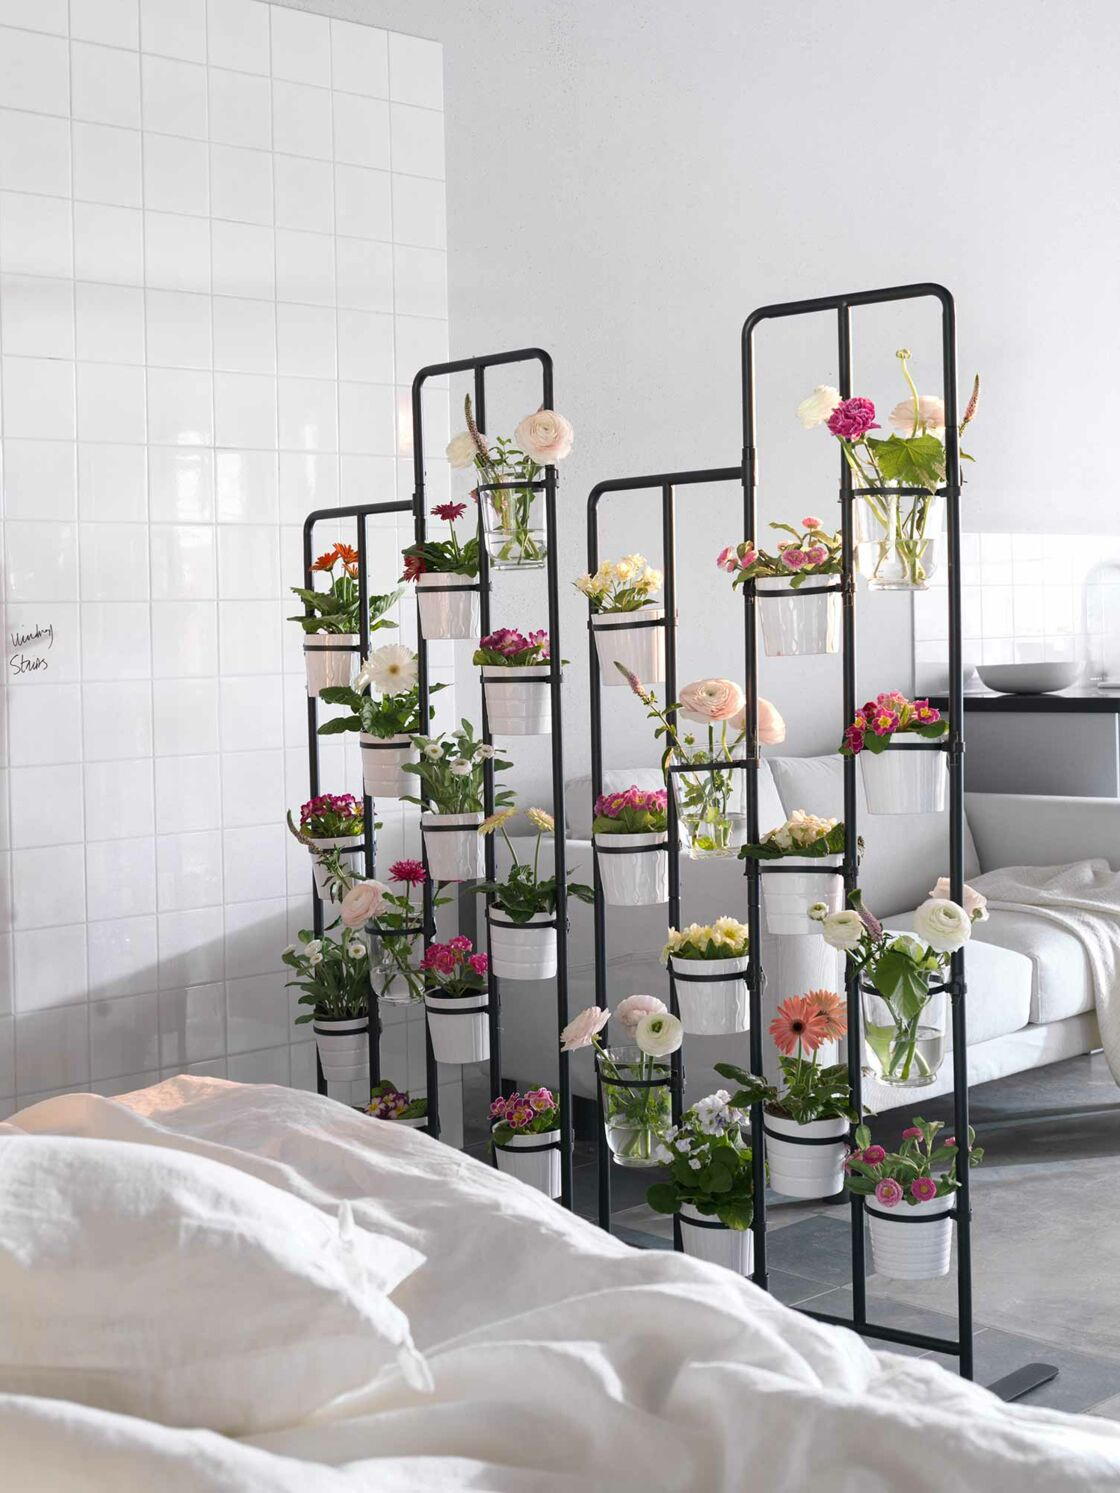 plantes d int rieur la nouvelle tendance d co femme actuelle le mag. Black Bedroom Furniture Sets. Home Design Ideas